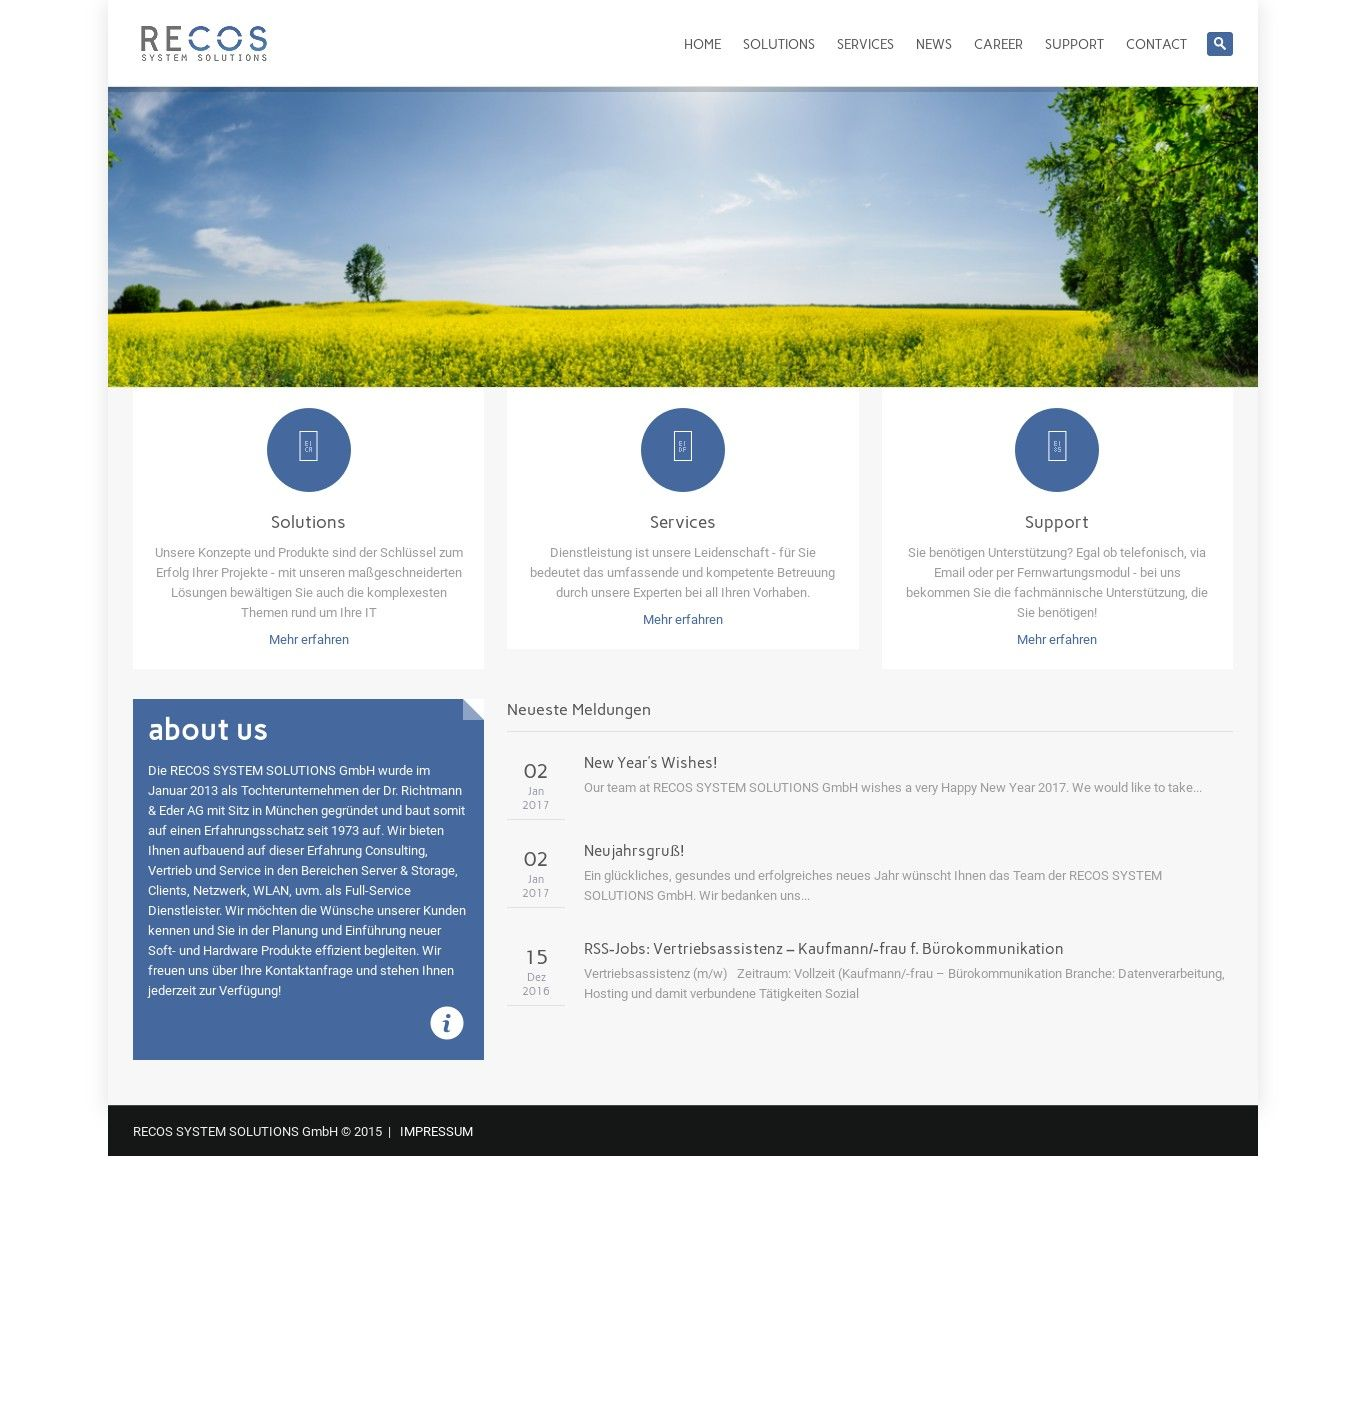 WordPress site alpsys.net uses the Wp theme System